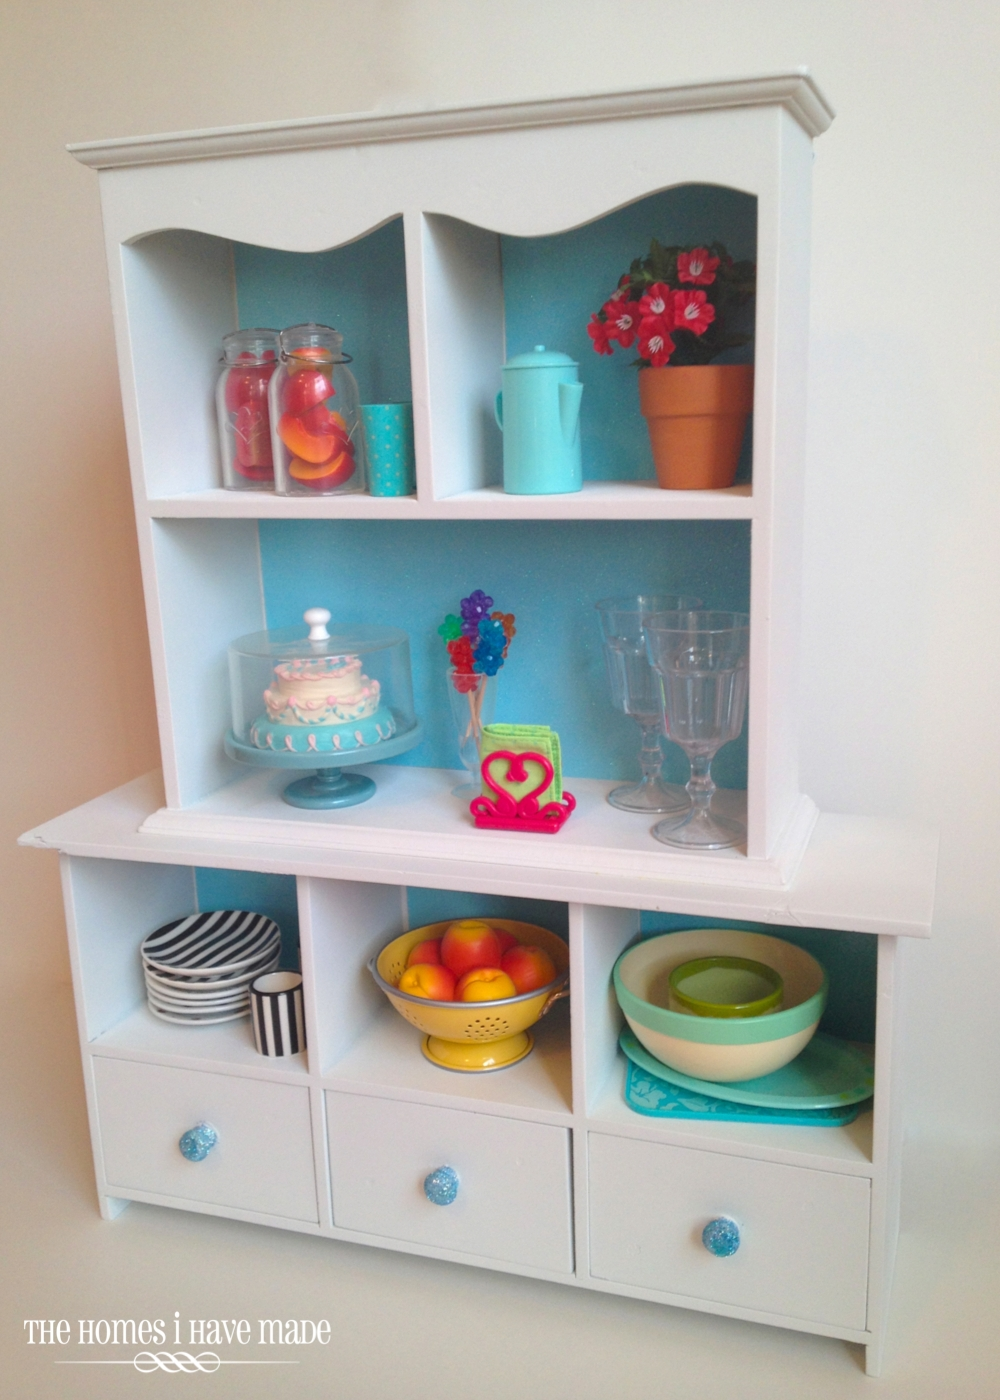 A Doll-Sized China Hutch - A (Mini) Furniture Makeover! | The Homes ...